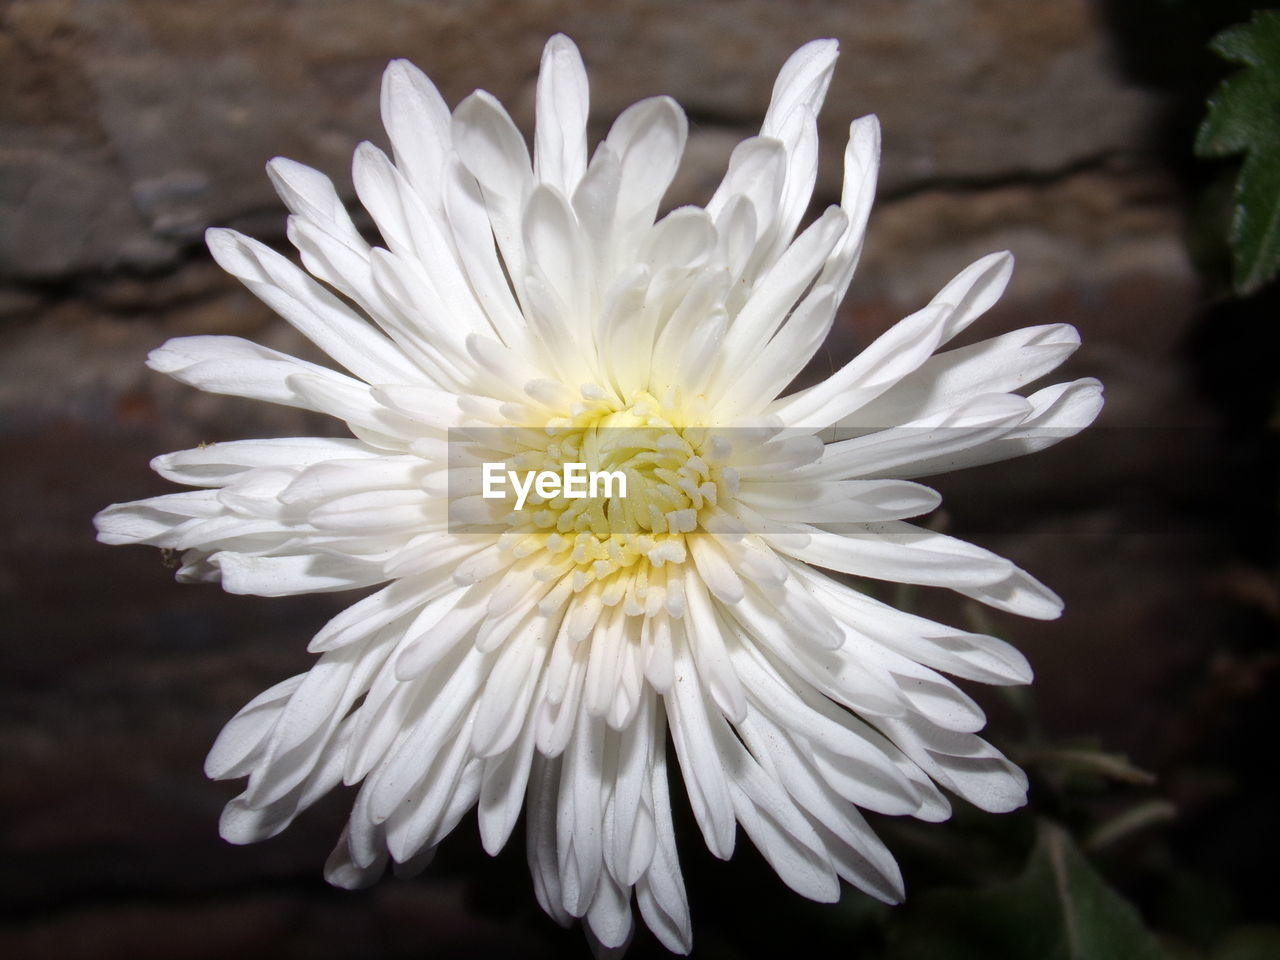 flower, petal, white color, nature, beauty in nature, flower head, growth, plant, fragility, close-up, focus on foreground, no people, freshness, blooming, outdoors, day